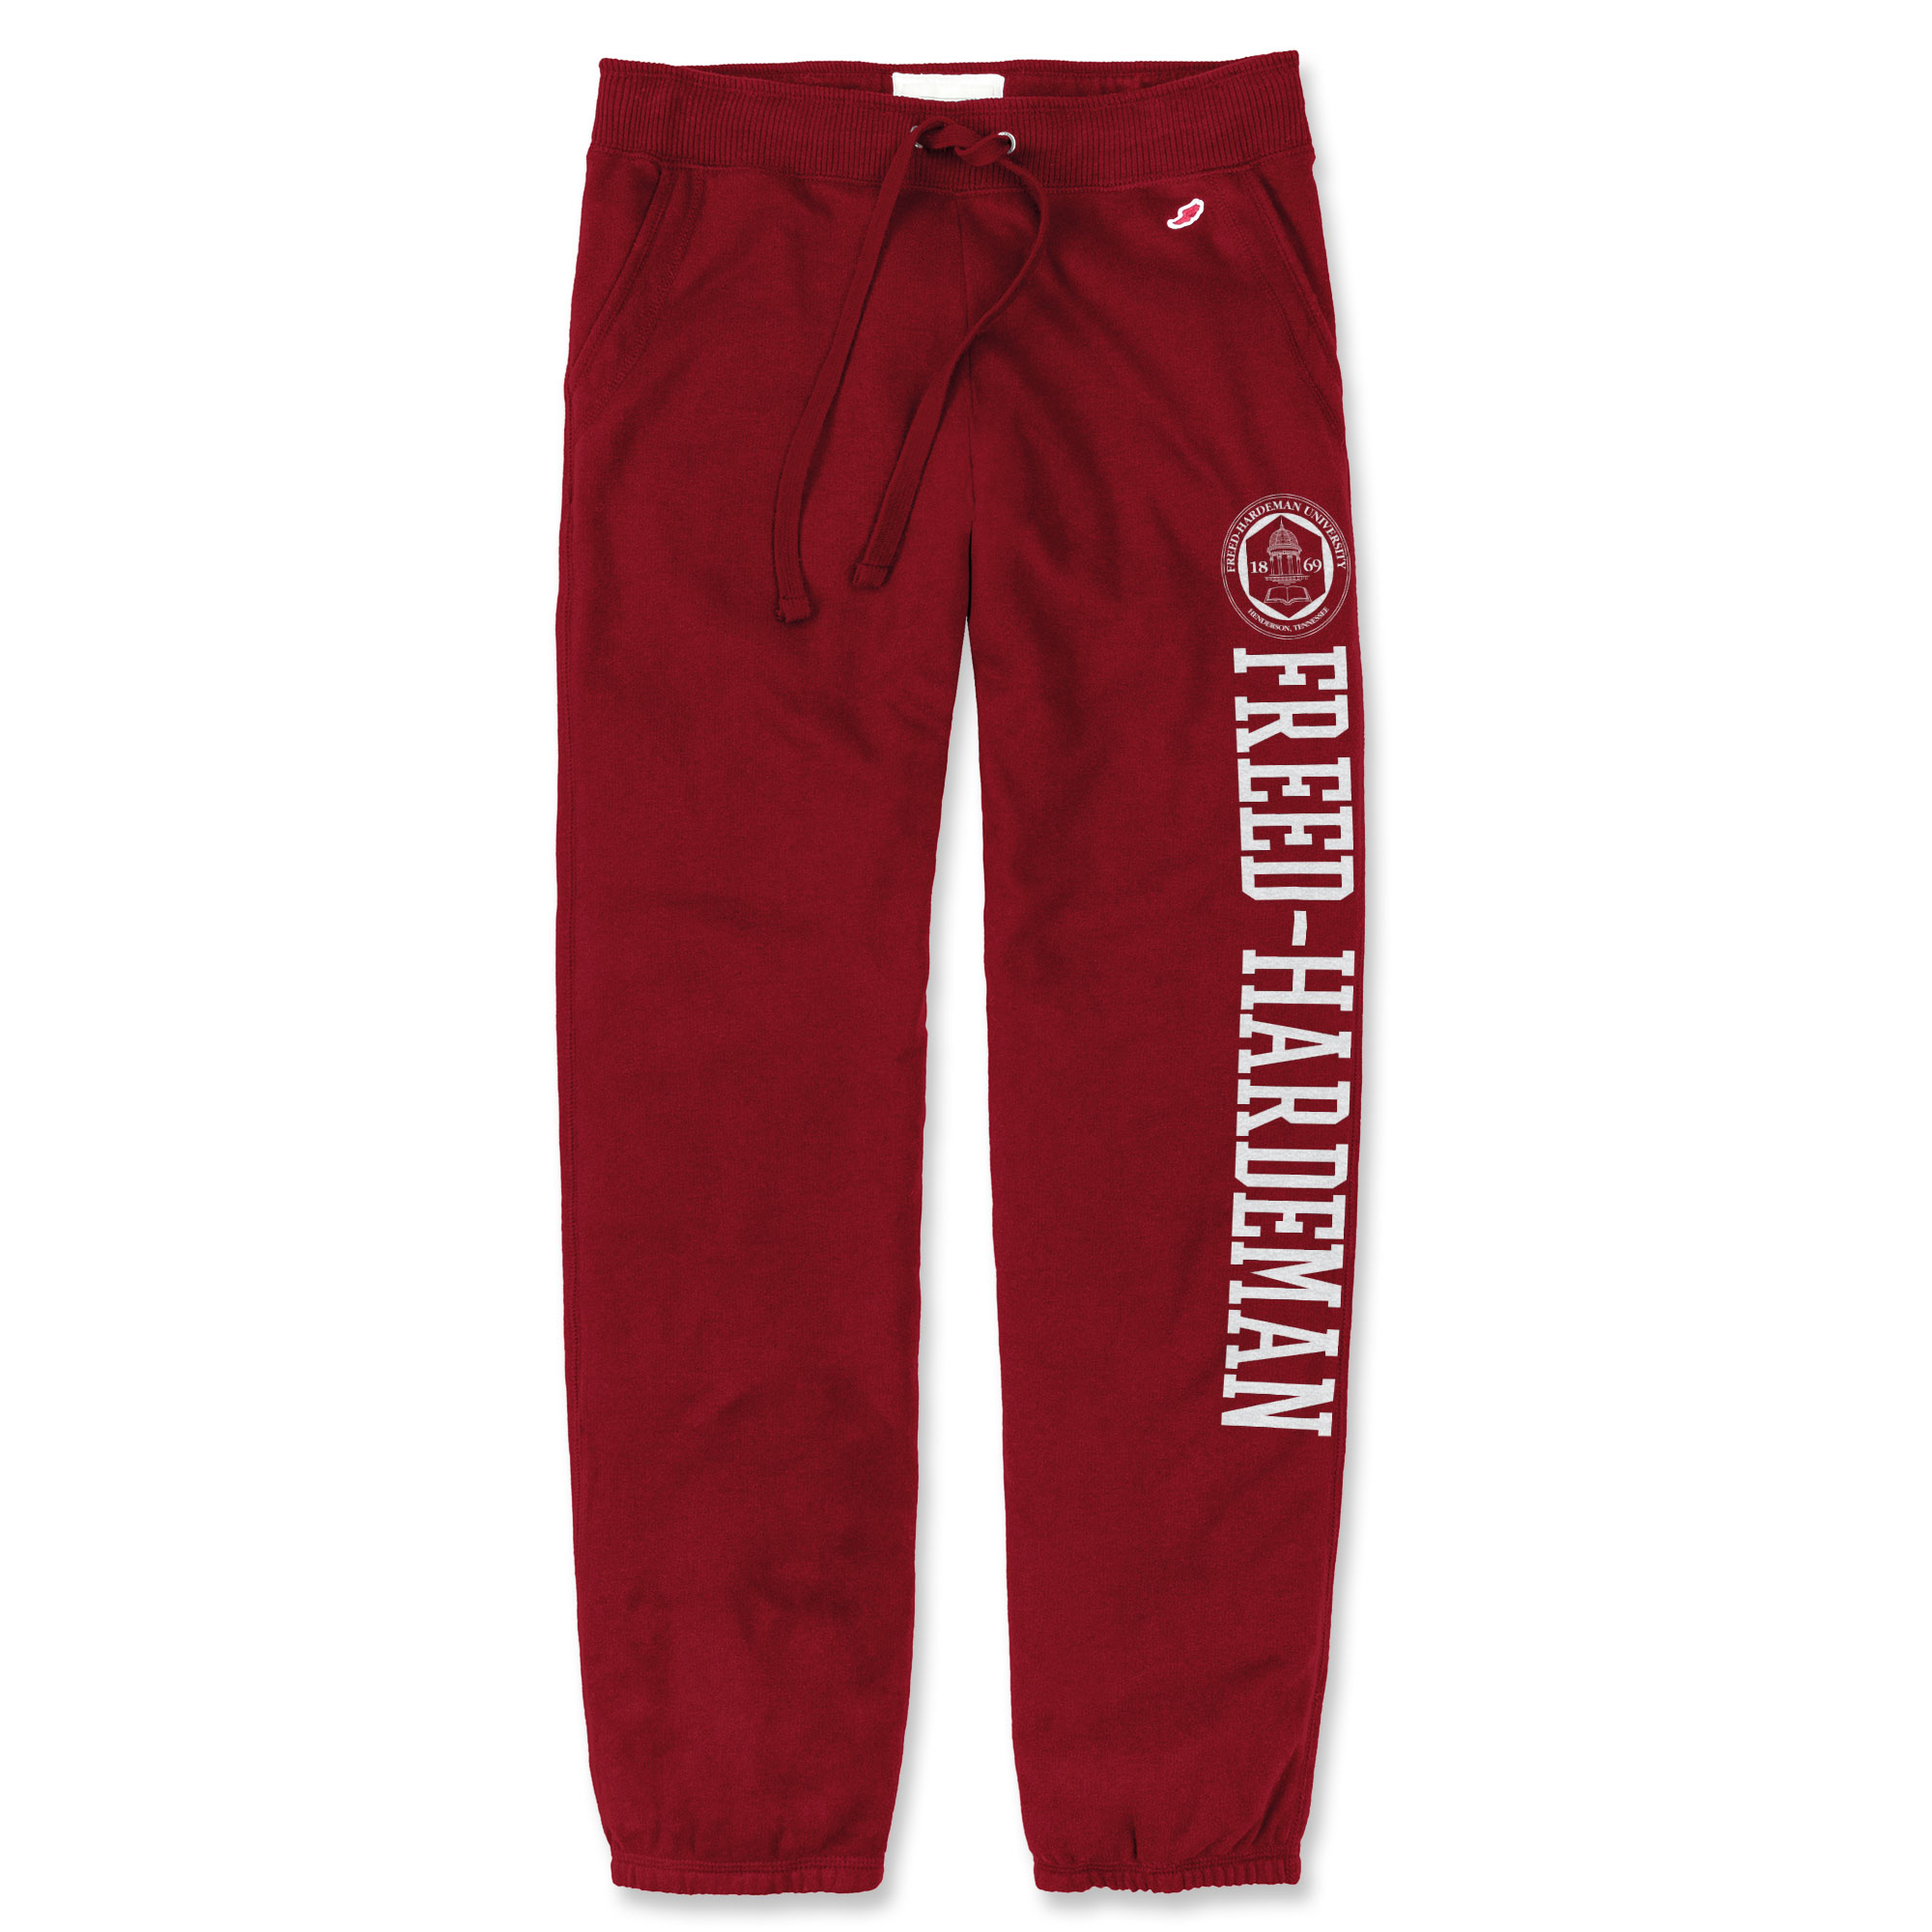 Women's Chelsea Sweatpants